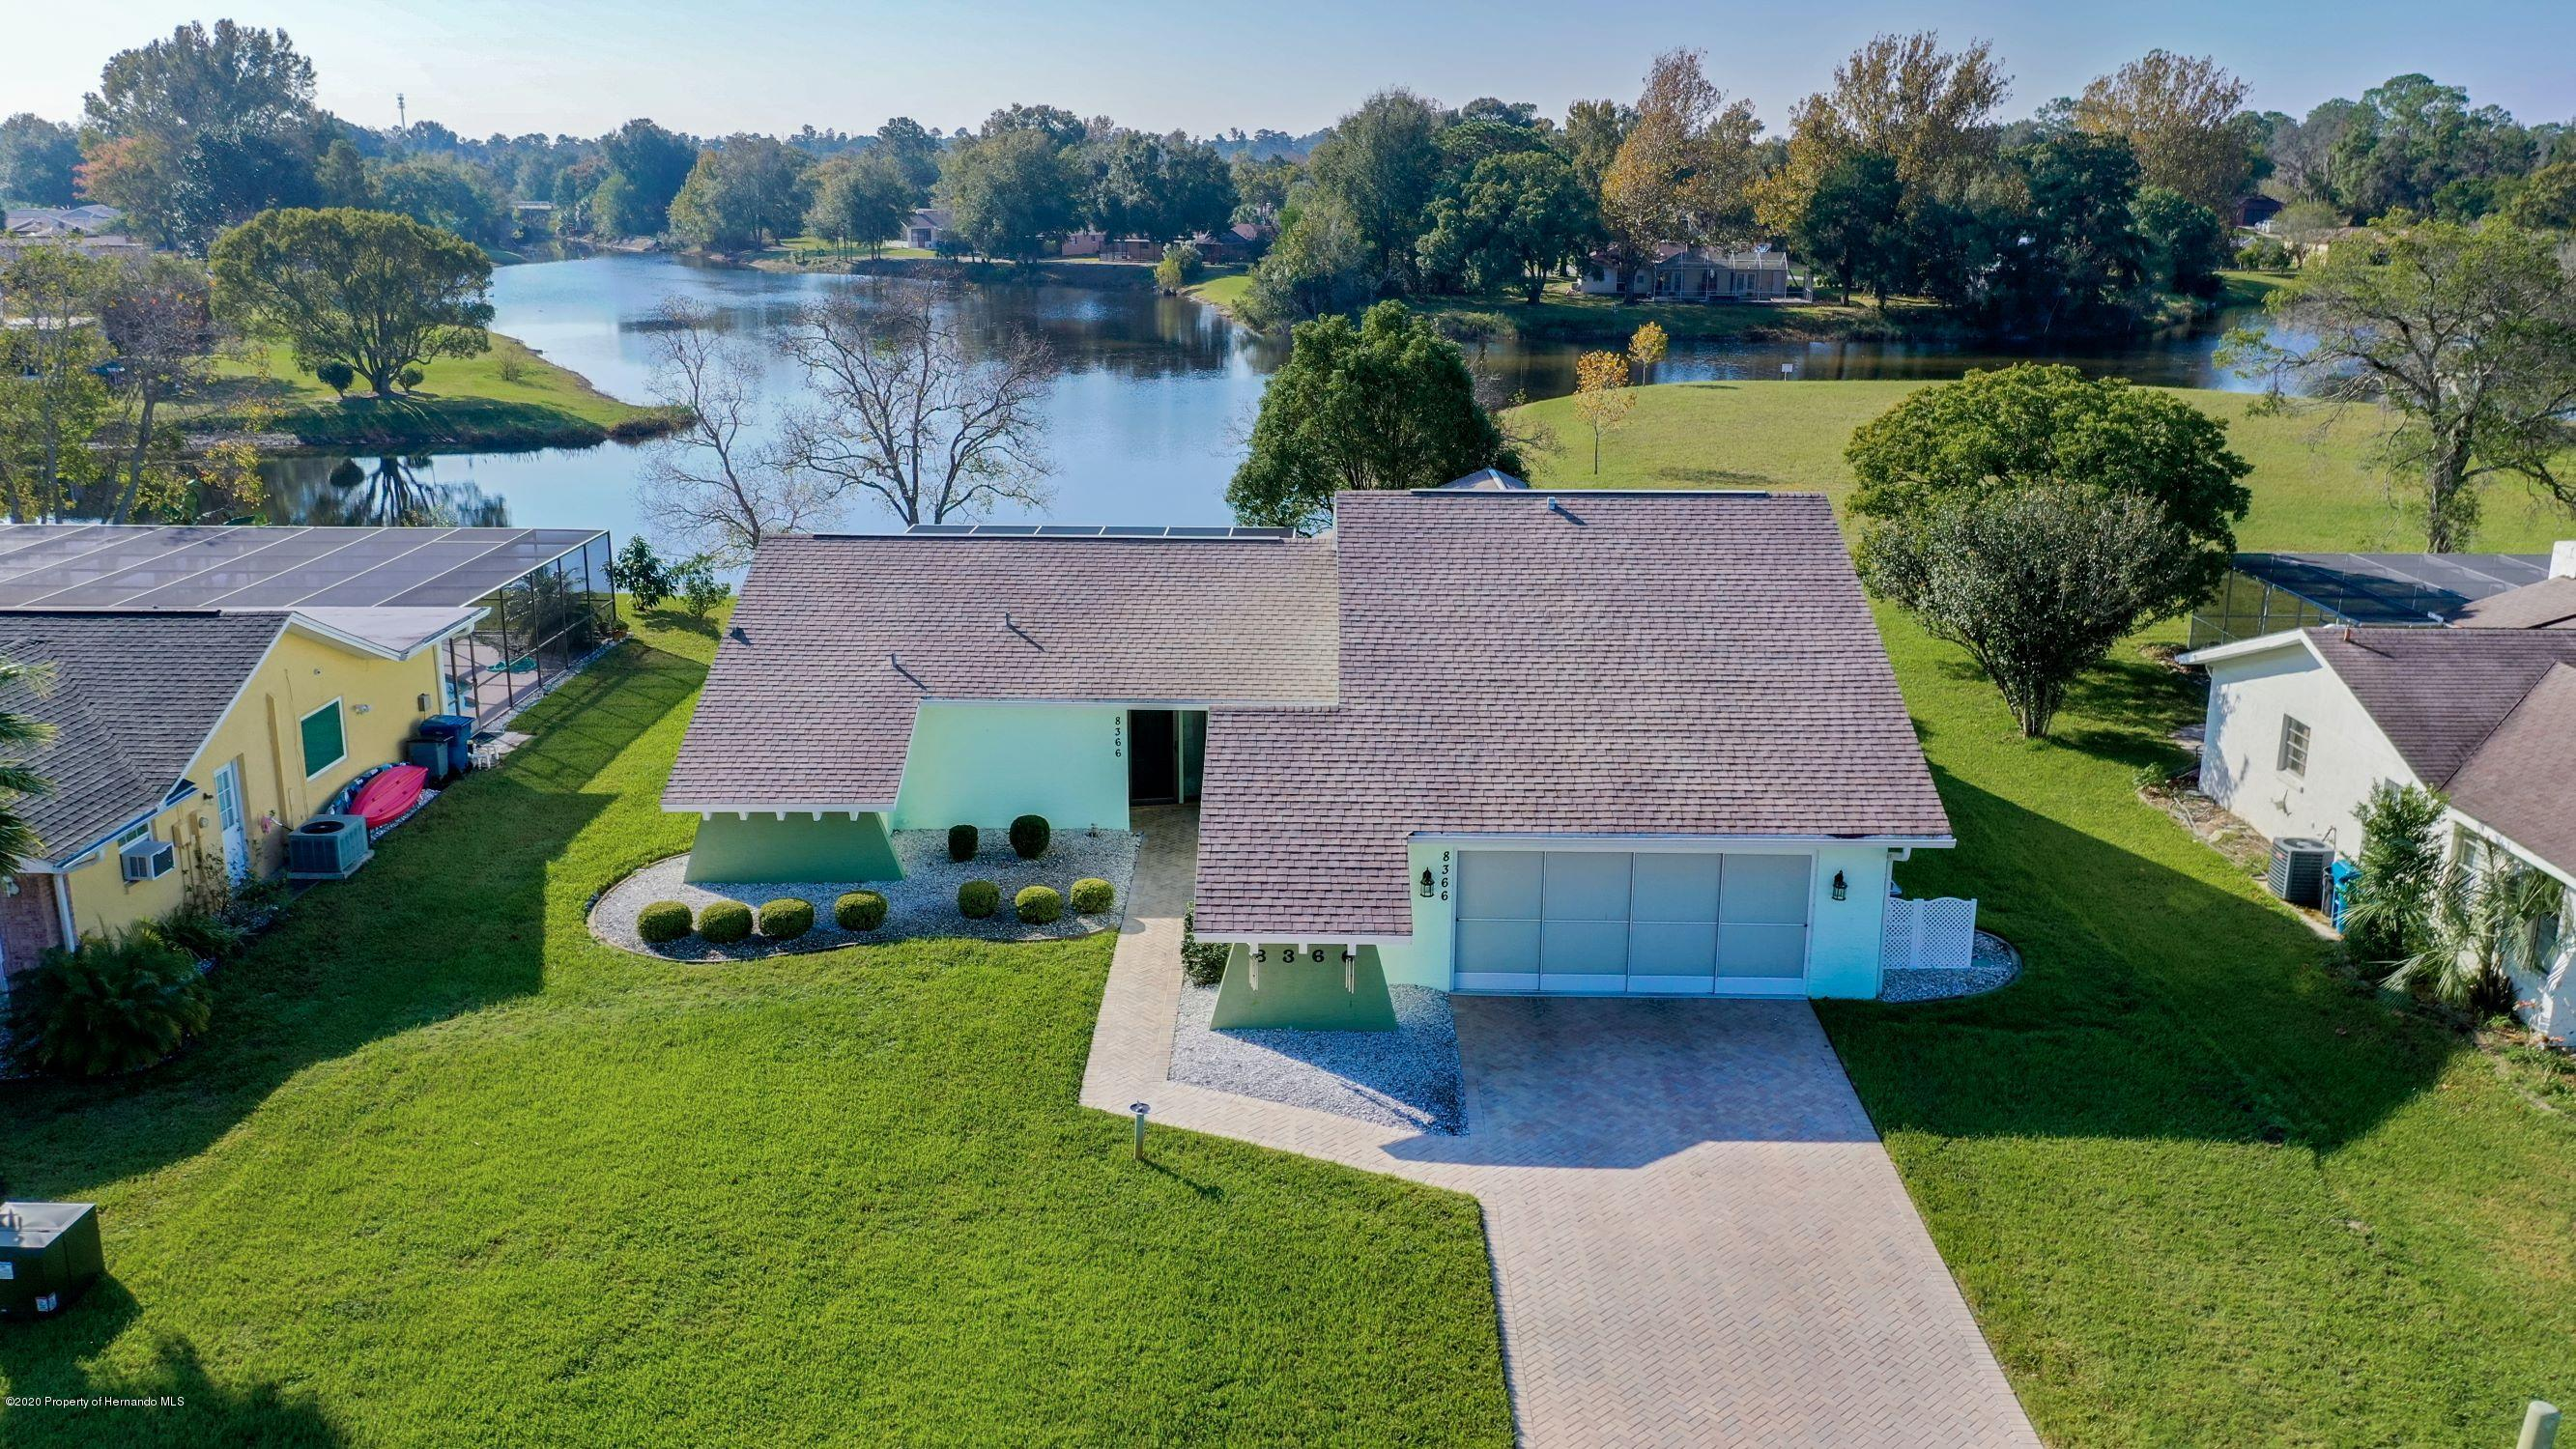 Details for 8366 Dunnellon, Weeki Wachee, FL 34613